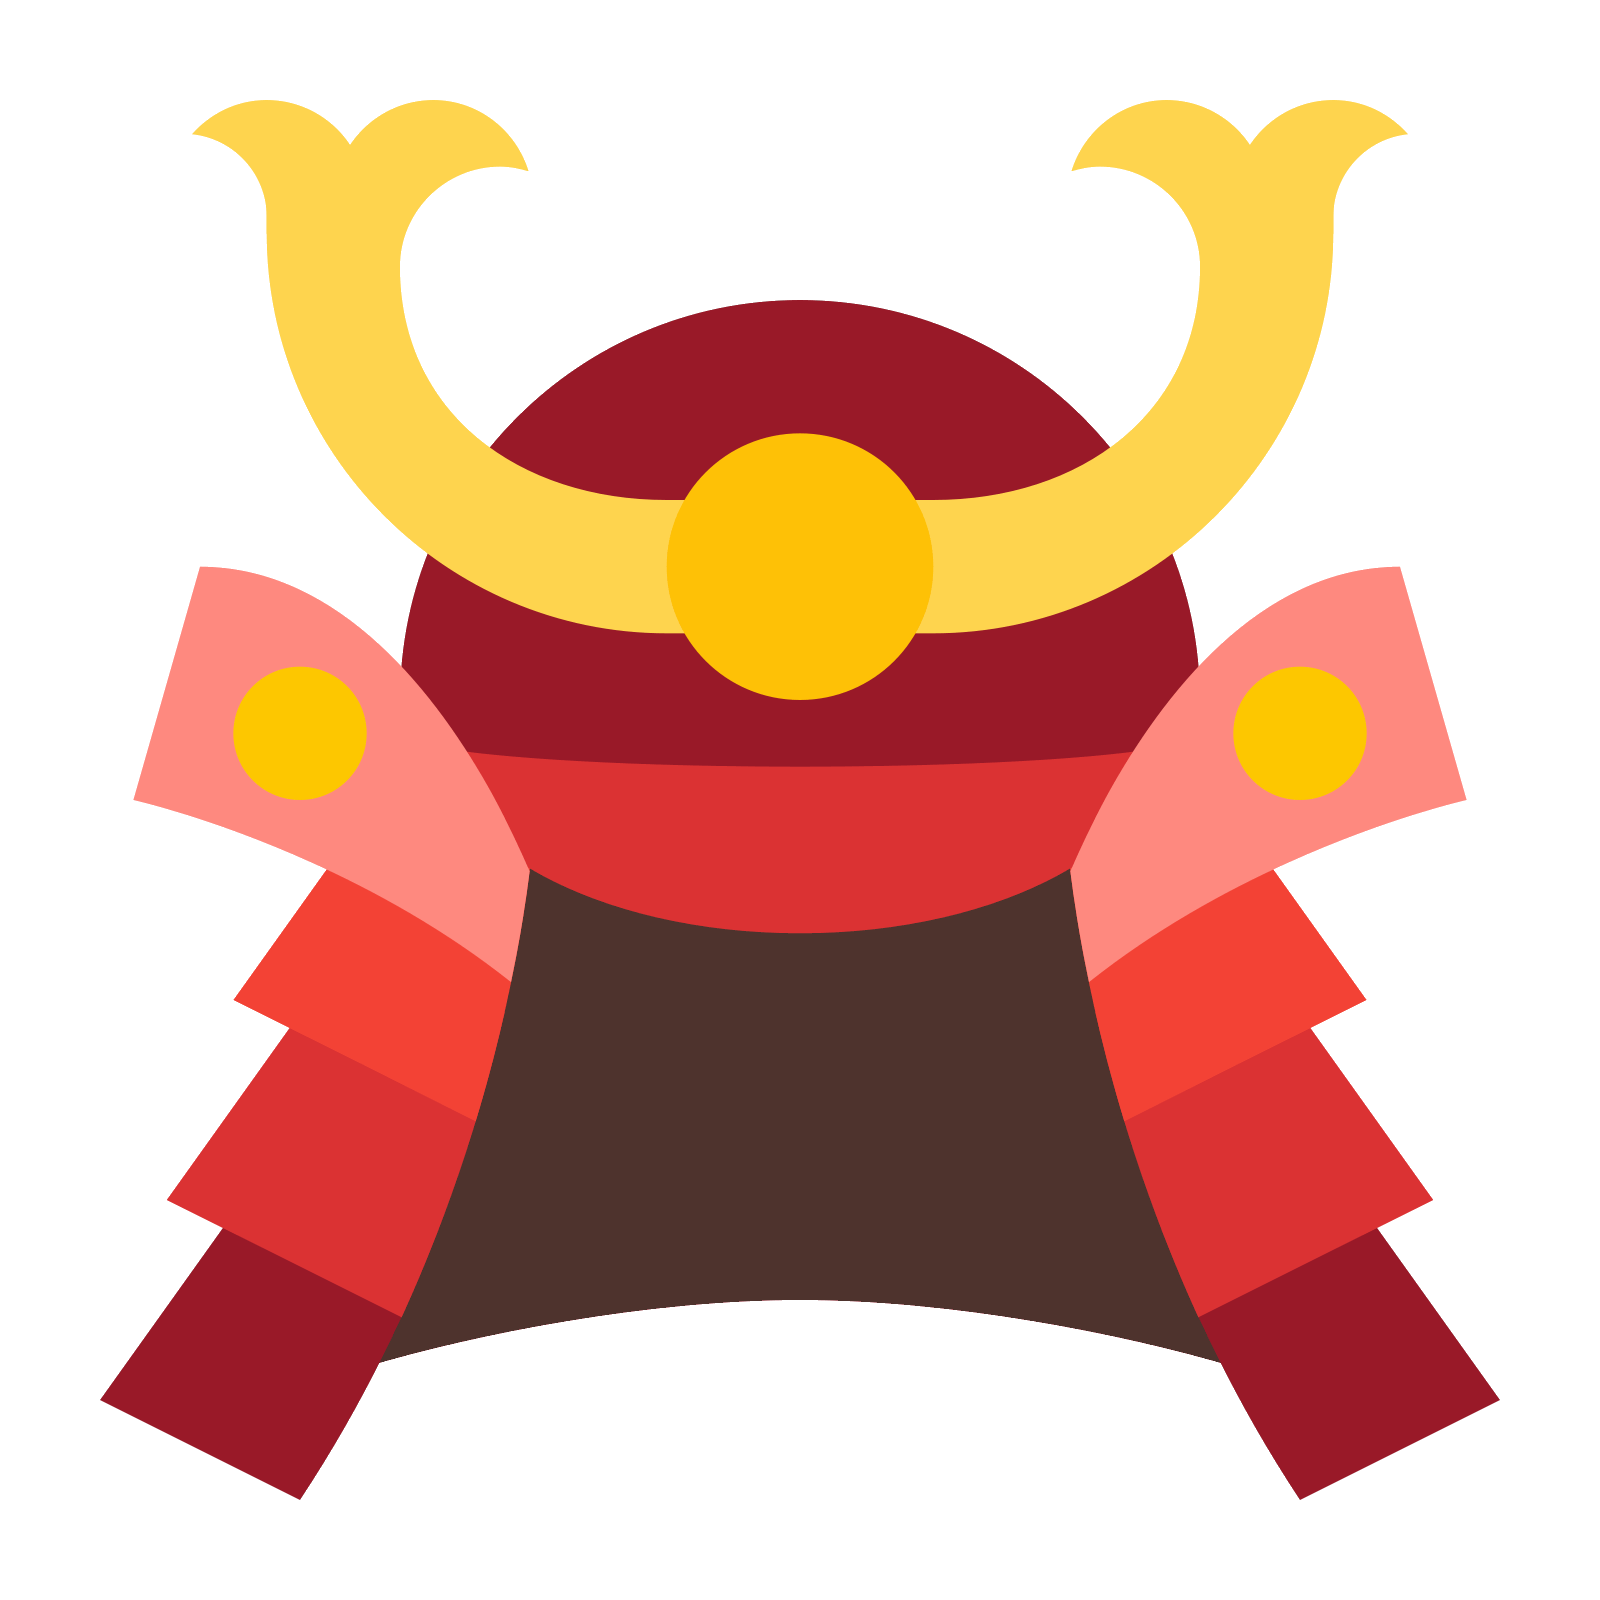 Samurai helmet png. Icon free download and